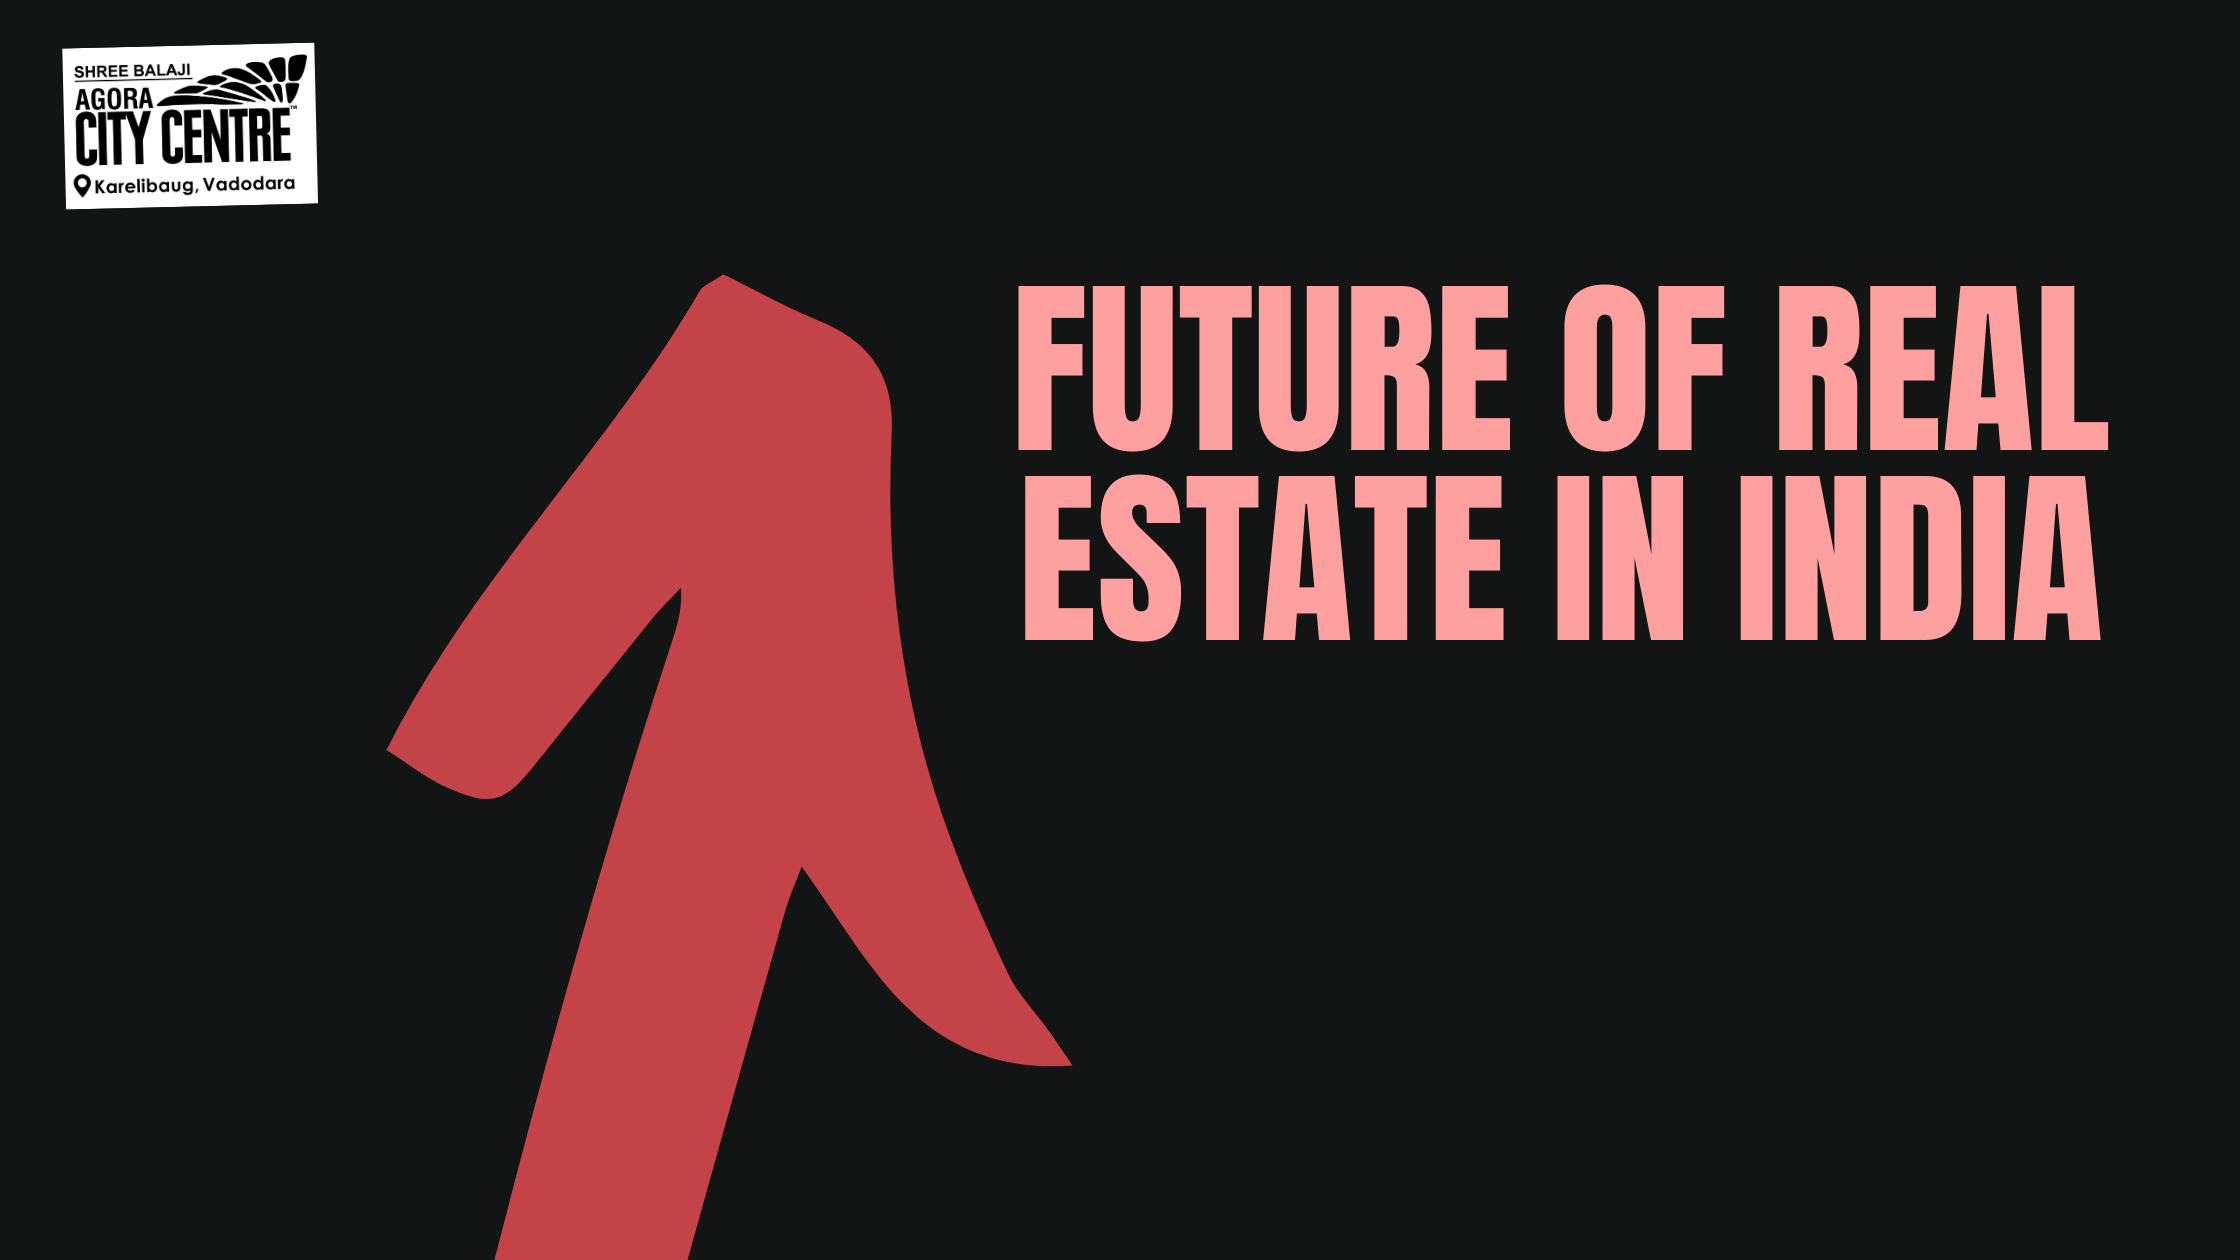 FUTURE OF REAL ESTATE IN INDIA